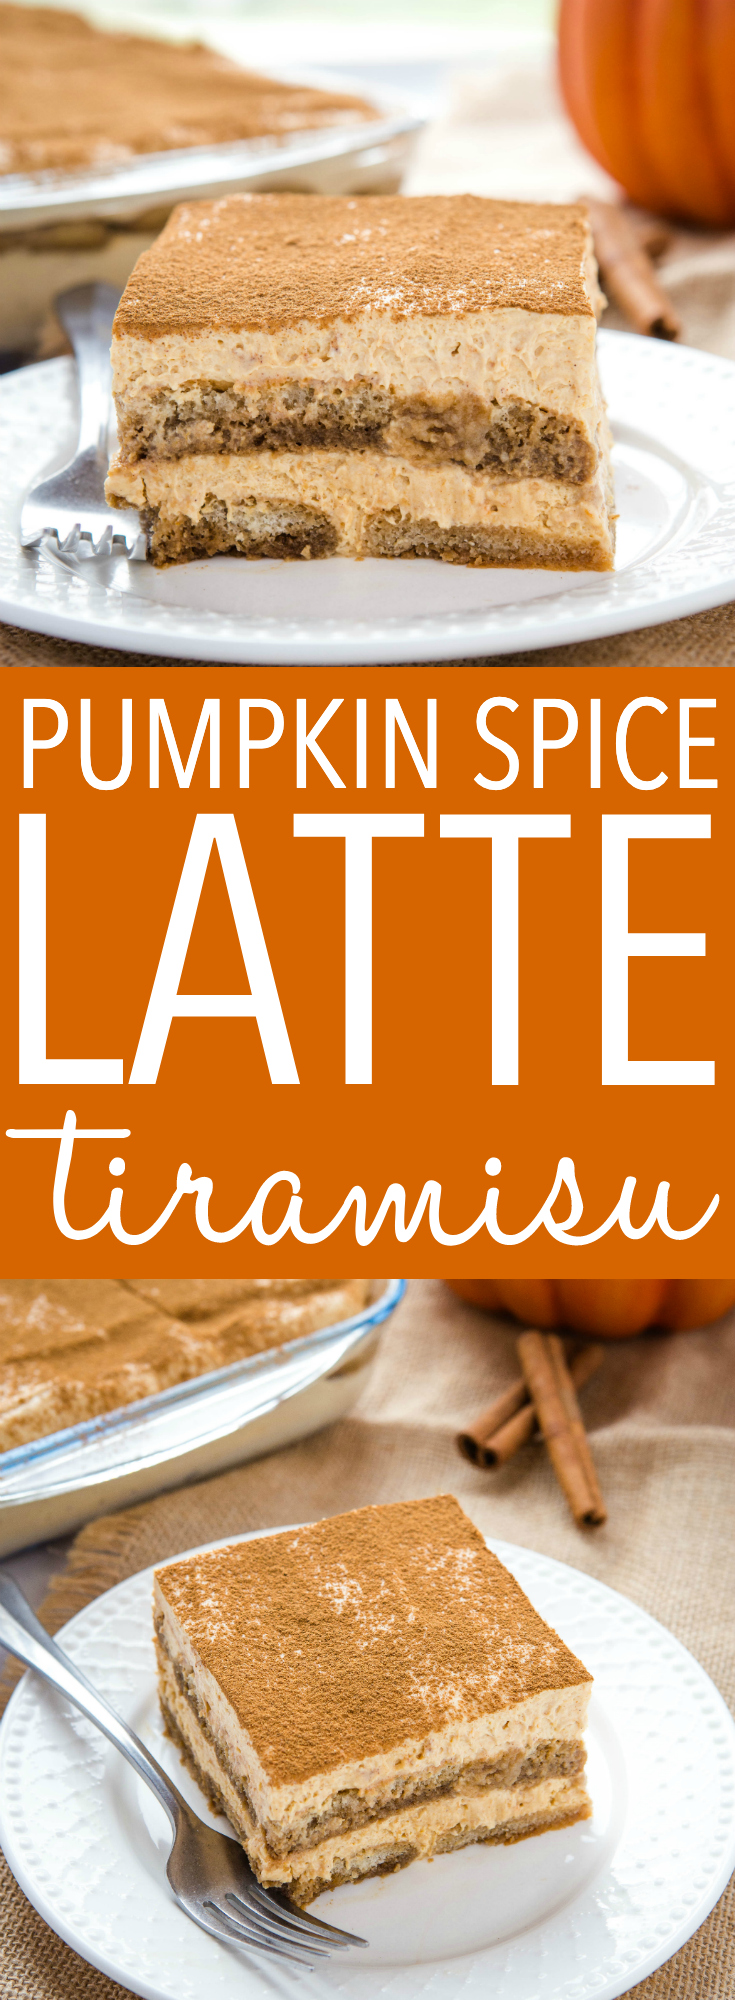 This No Bake Pumpkin Spice Latte Tiramisu is the best fall dessert for Thanksgiving! It's easy to make ahead of time, and it's bursting with fall flavours! Recipe from thebusybaker.ca! #tiramisu #pumpkin #spice #latte #pumpkinspicelatte #fall #thanksgiving #christmas #holidays #dessert #sweet #nobake #recipe via @busybakerblog